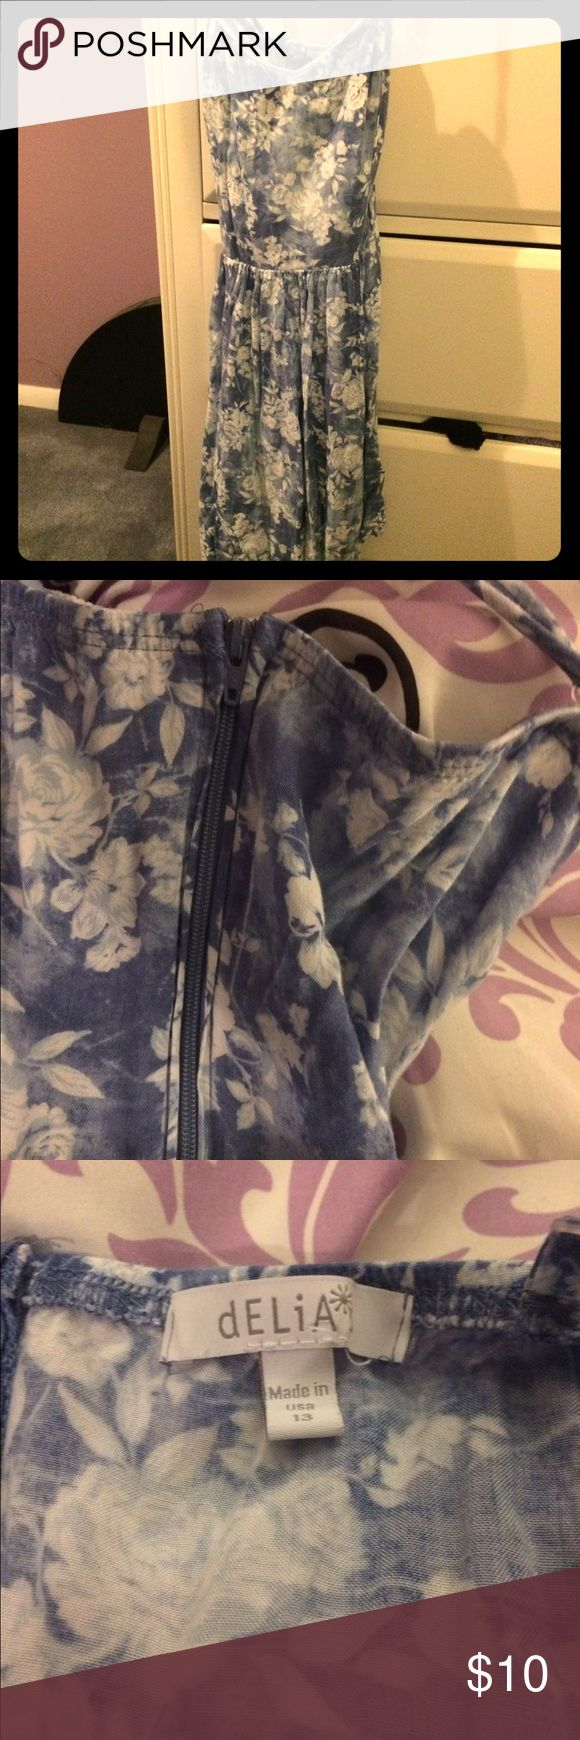 Blue & white floral dress Worn several times but in good condition. Side zipper. The straps are a bit funky, but ultimately they do a cross-cross thing in the back. Little lace decal along neckline. Delias Dresses Mini